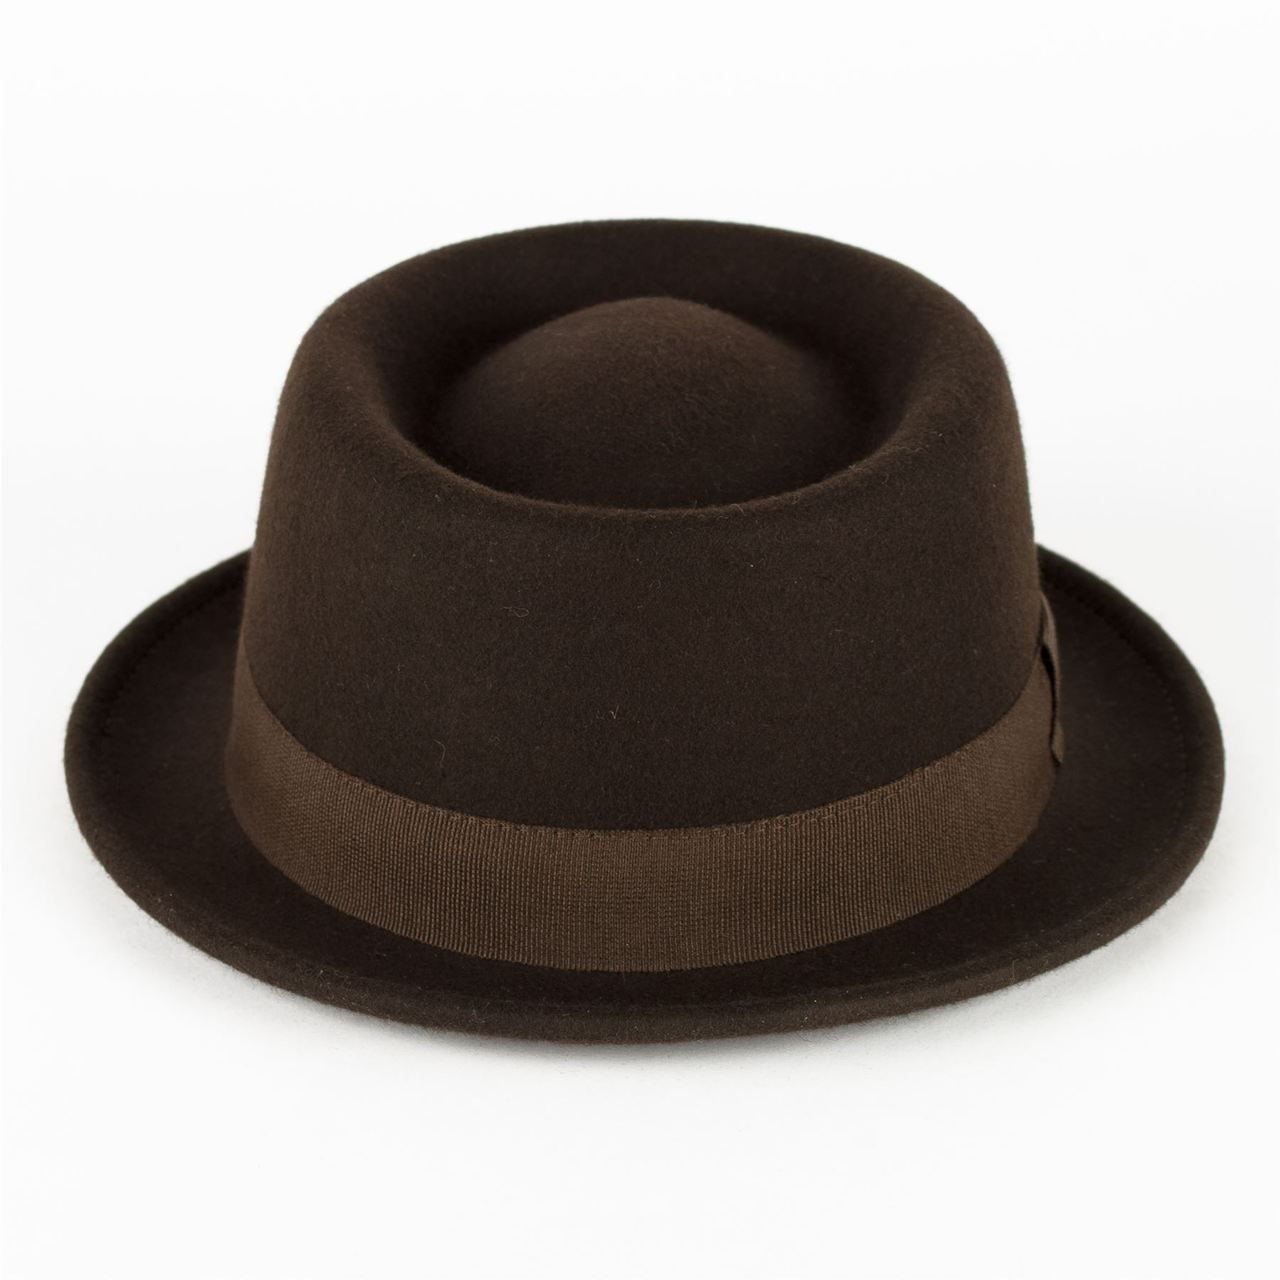 100% Wool Pork Pie Hat Waterproof   Crushable Handmade in Italy ... 58d77ea11df5